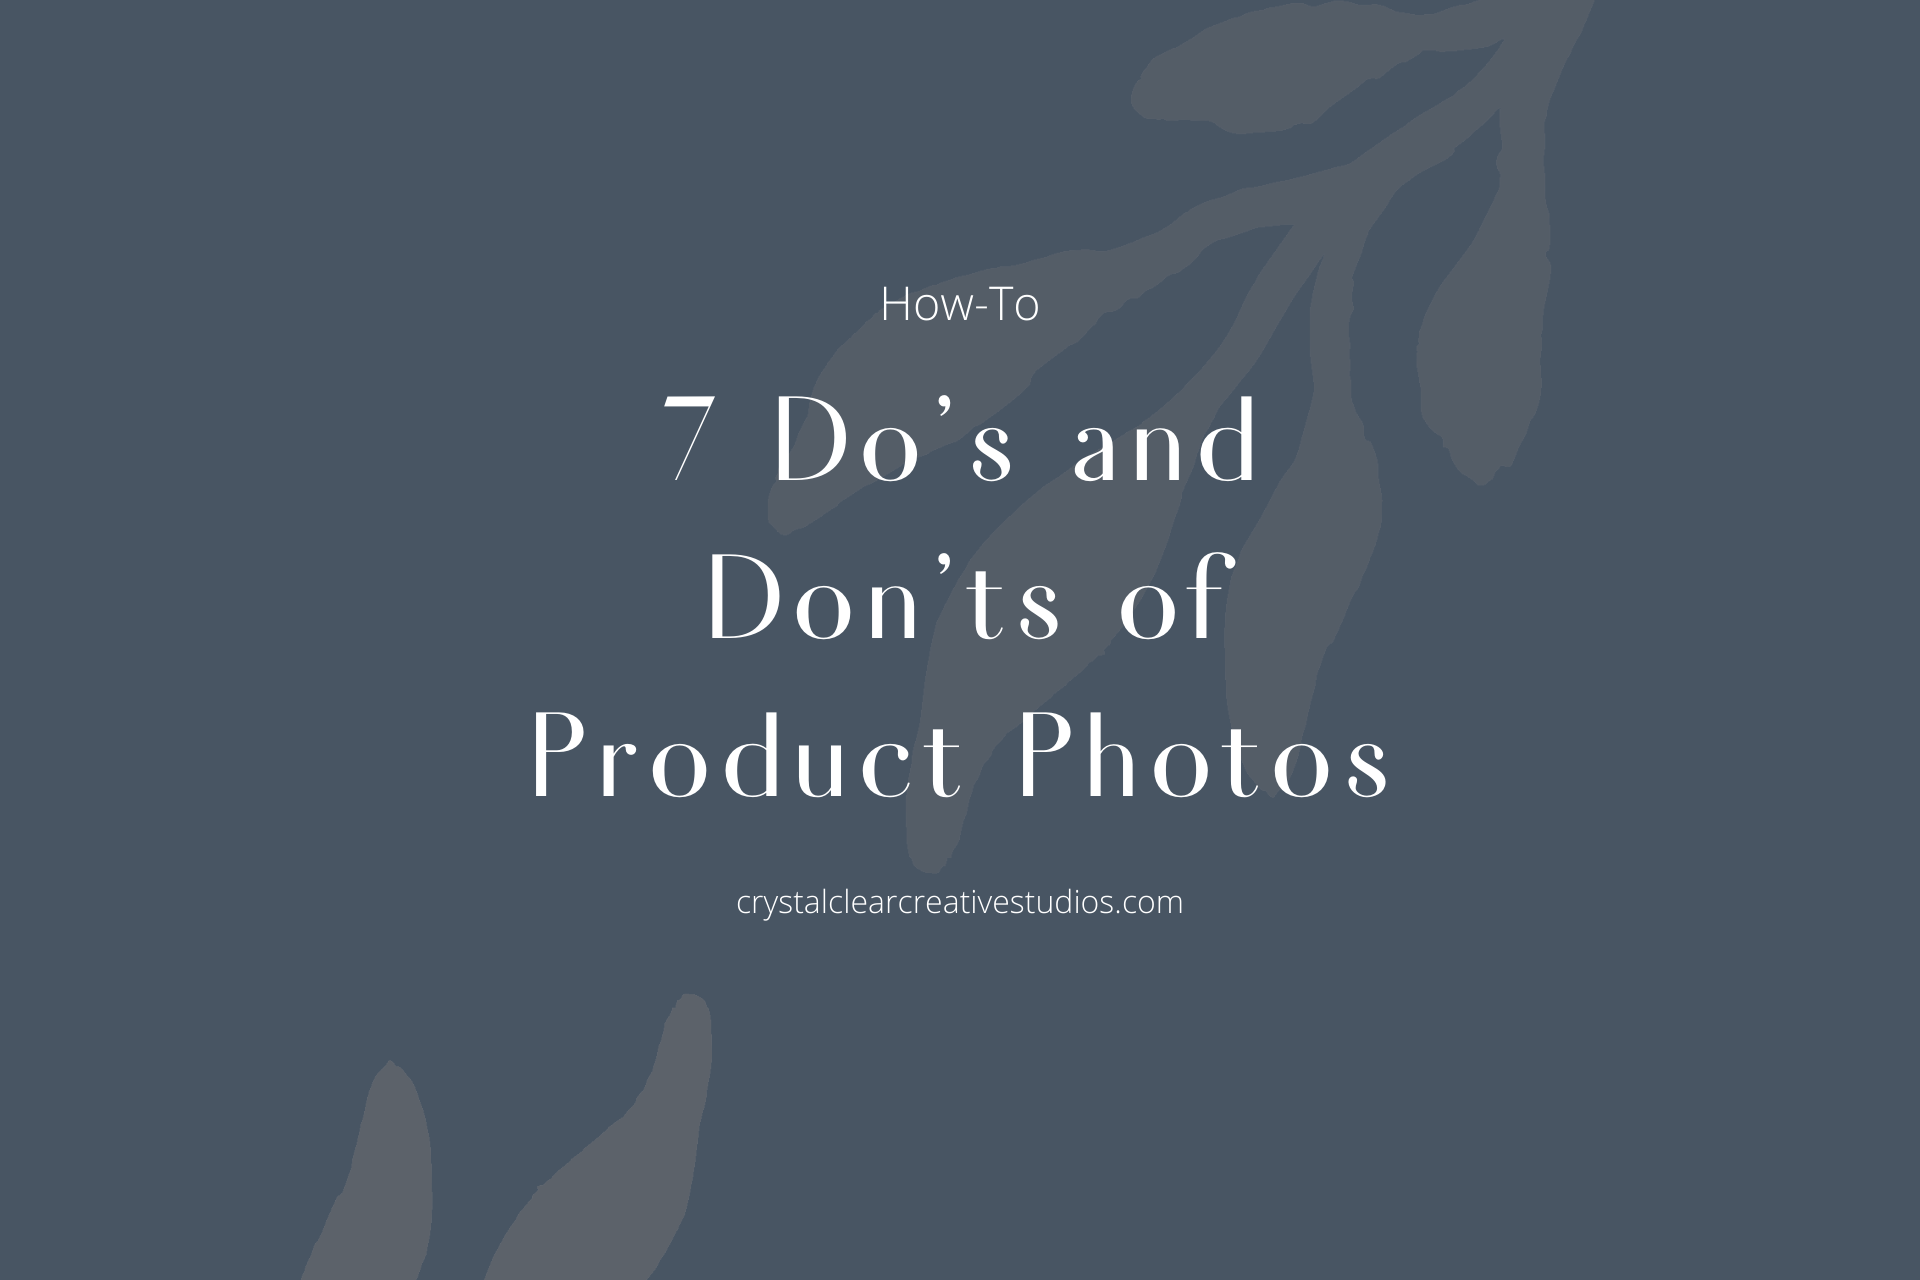 7 Do's and Don'ts of Product Photos